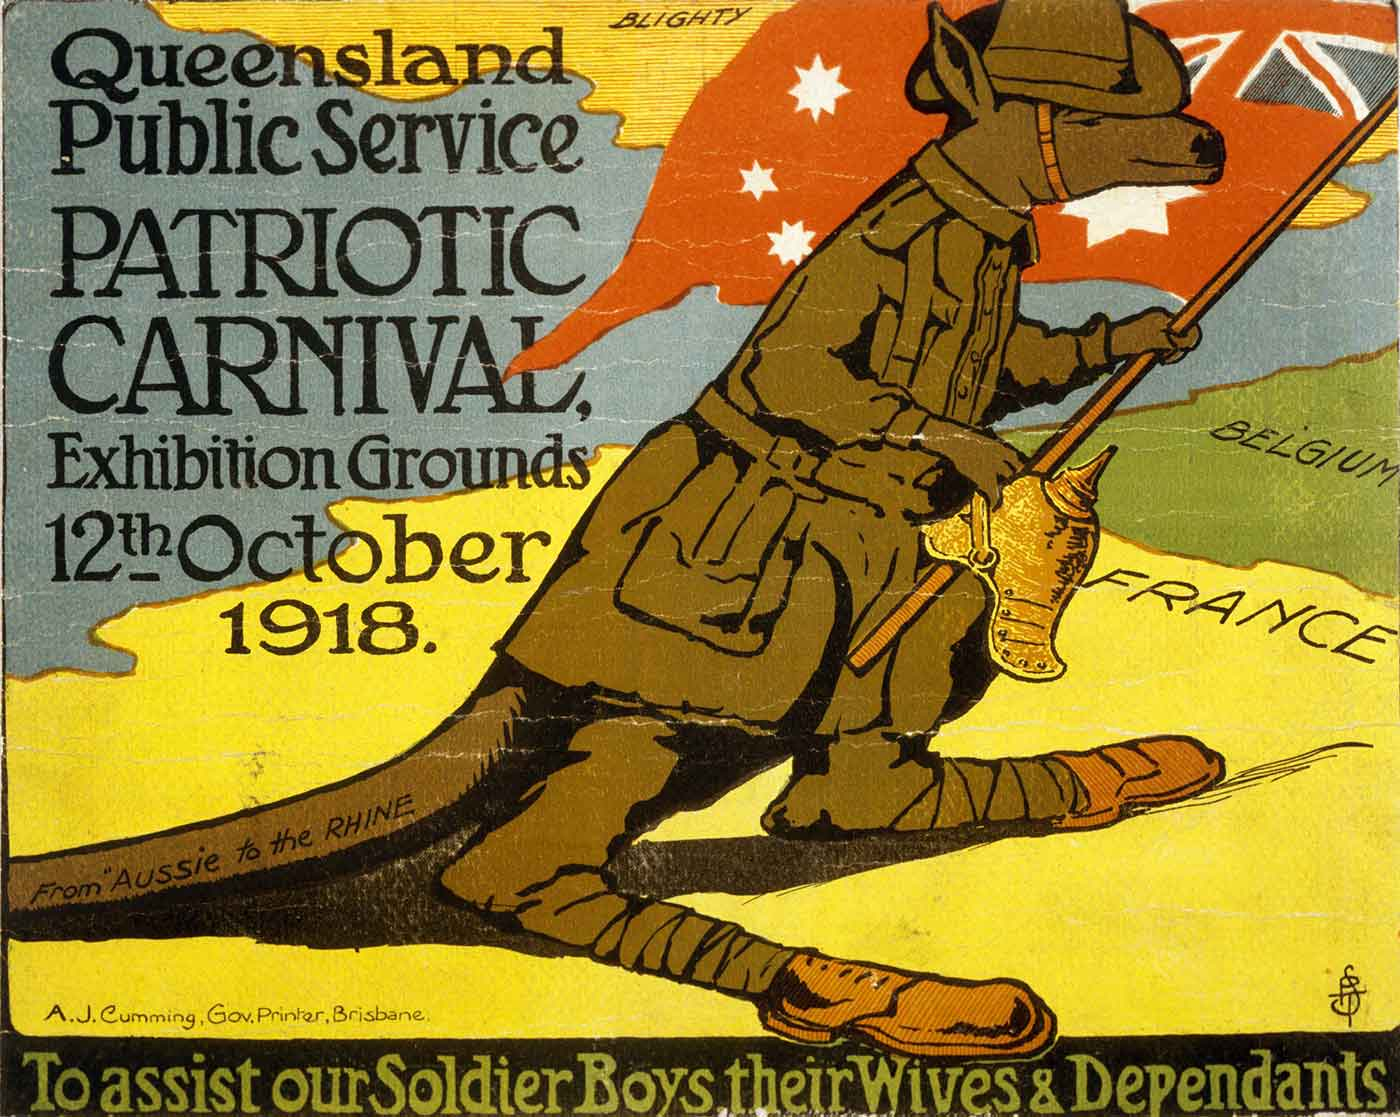 Colour poster showing a caricatured kangaroo dressed in Australian army uniform and holding a red ensign and Prussian-style helmet. The kangaroo stands on a map of 'France', with 'Belgium' nearby and 'Blighty' across a body of water. The kangaroo has 'From Aussie to the Rhine' printed on his tail. 'Queensland public service, Patriotic Carnival, Exhibition Grounds, 12th October 1918' is printed in the left side of the poster.   - click to view larger image